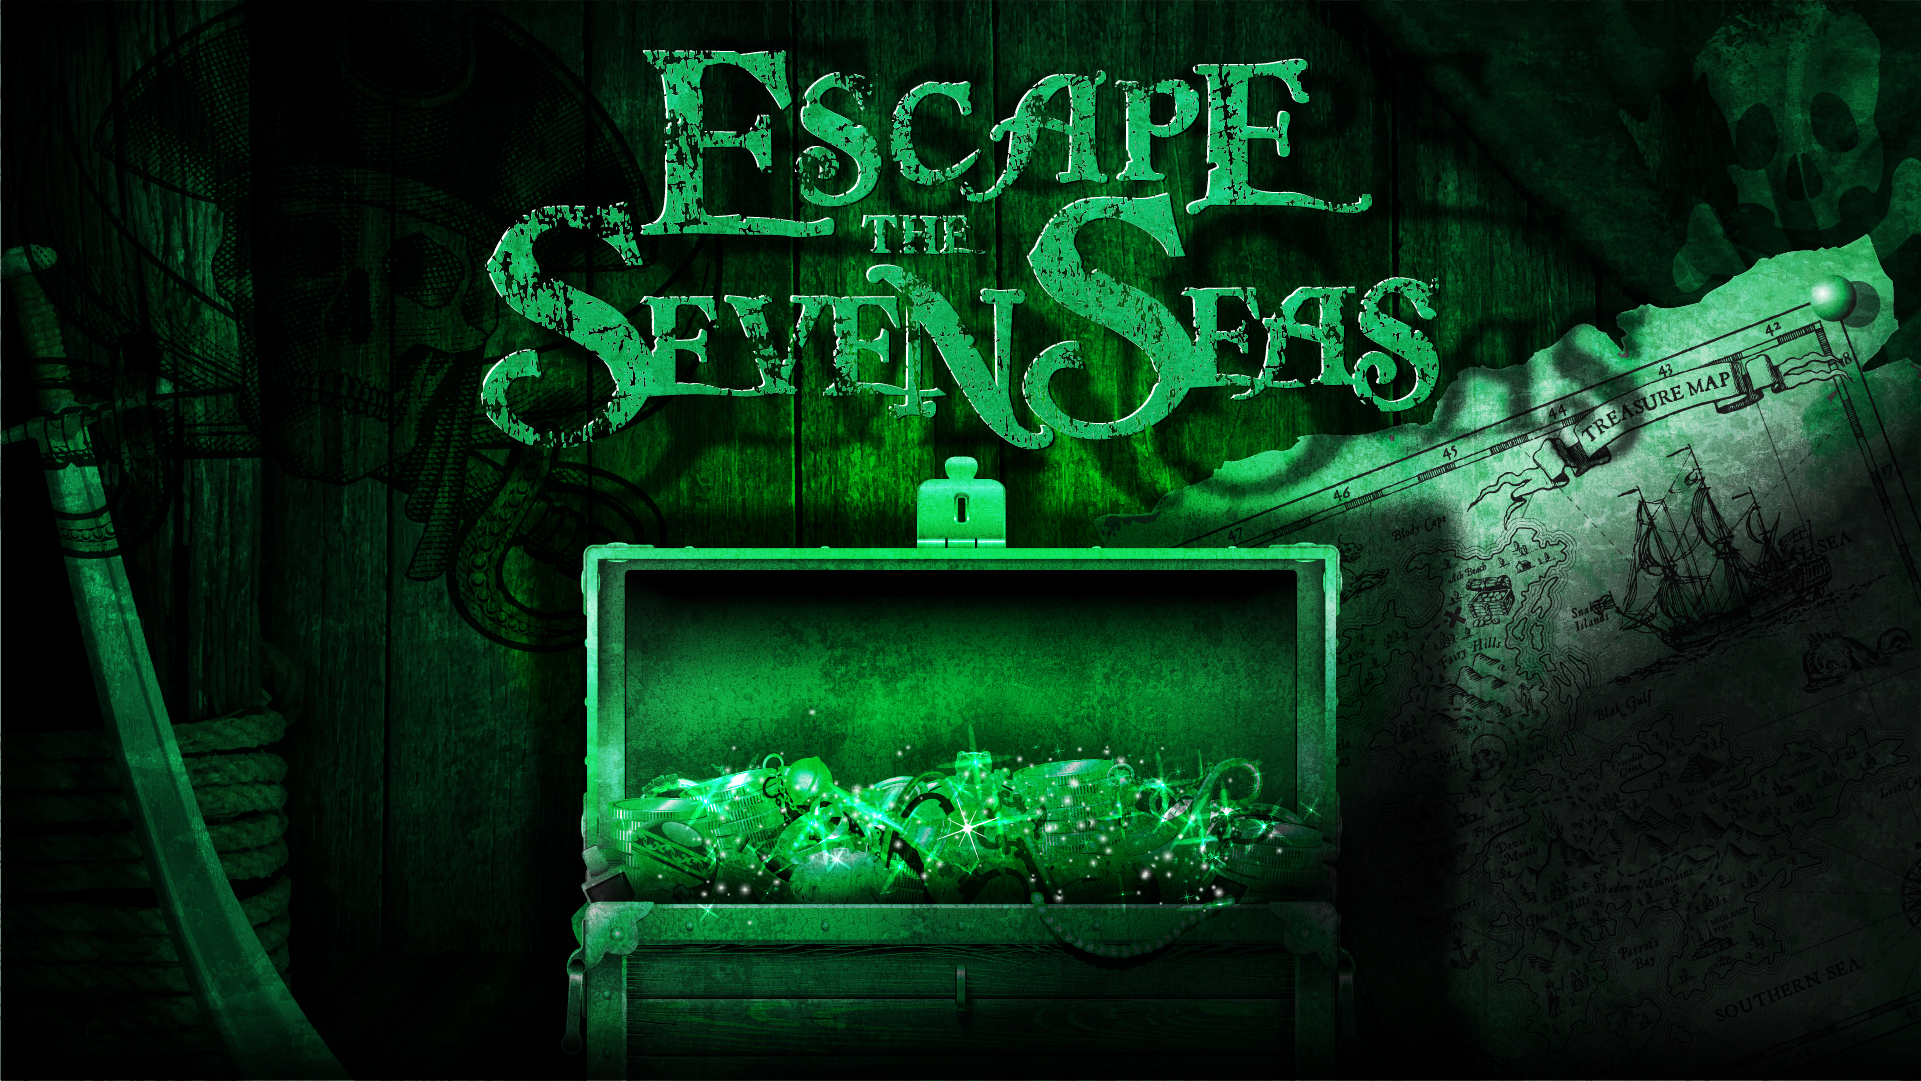 ESCAPE THESEVEN SEAS - COMING SOON!You and your crew have been locked away in the brig. Does your team have what it takes to escape your cell, break into the Captains chamber and steal the treasure all for yourself? Glory and riches await in this exciting escape game.